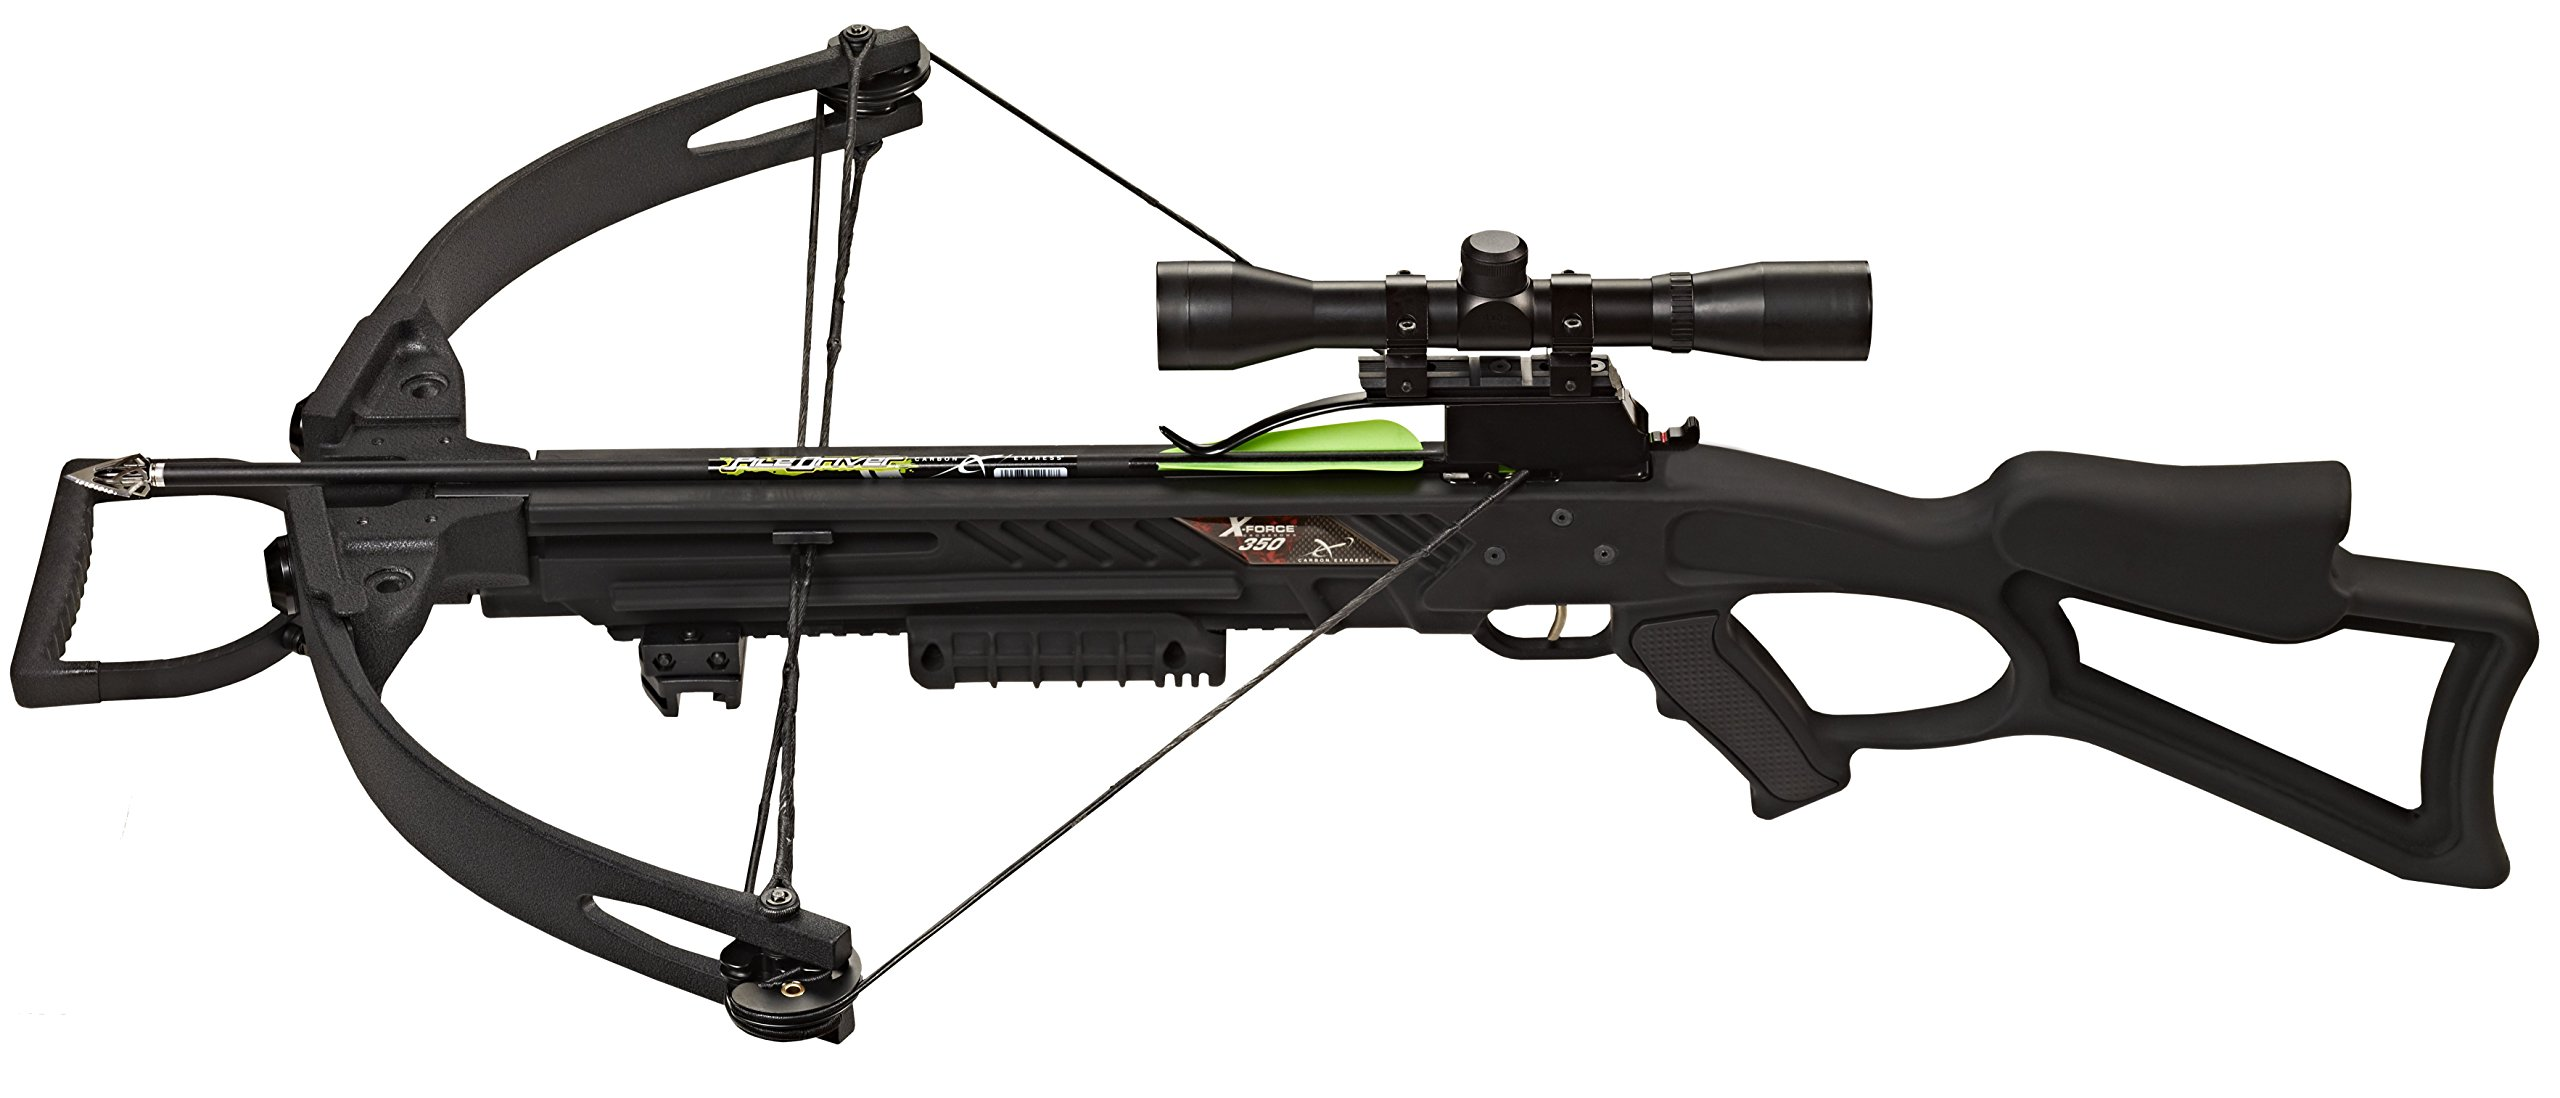 Carbon Express 20271 X-Force 350 Crossbow Kit (Rope Cocker, 3 Arrow Quiver, 3 Crossbolts, Rail Lubricant, 3 Practice Points, 4x32 Scope), Black by Carbon Express (Image #3)